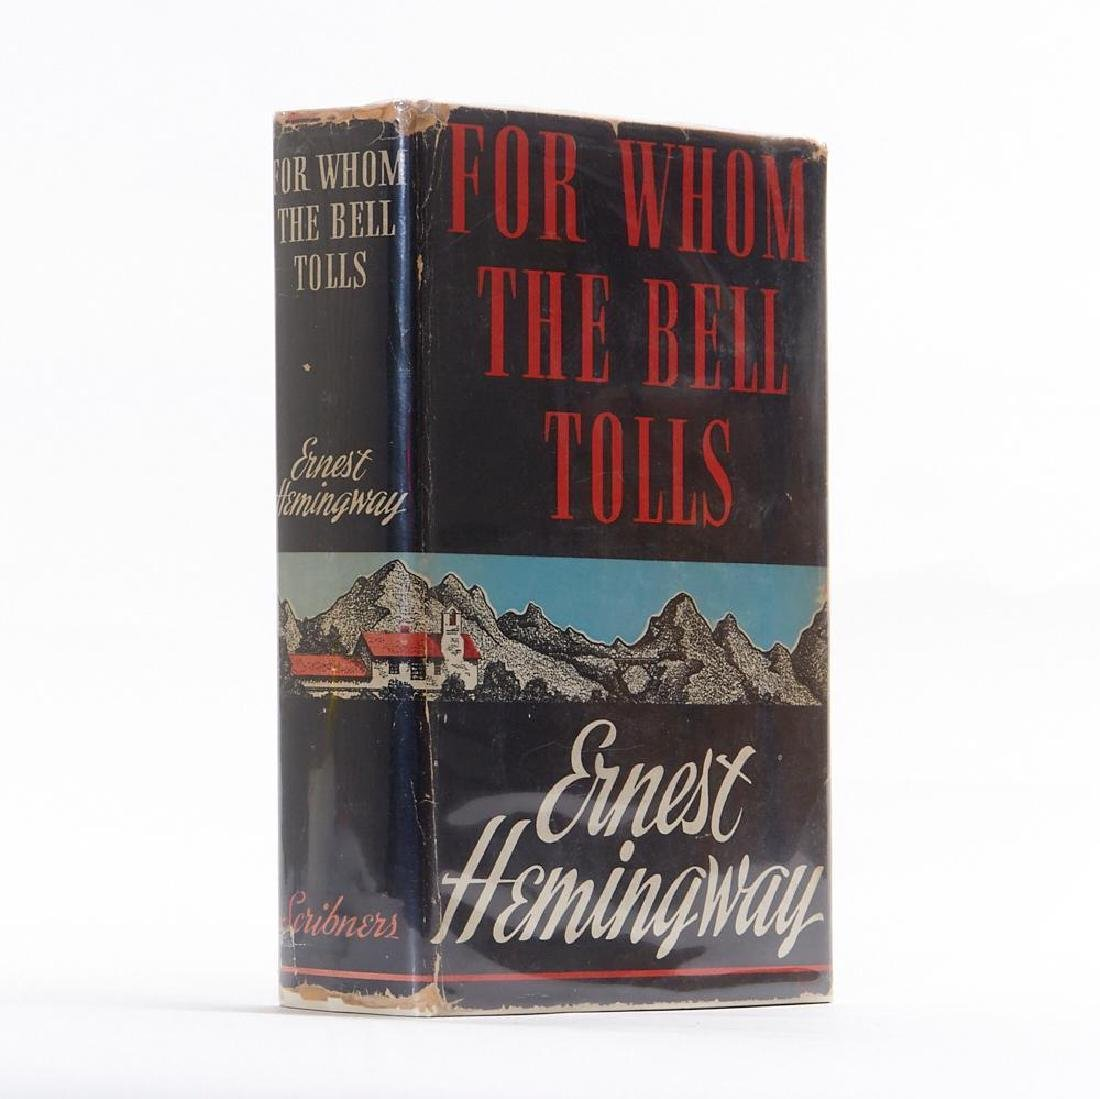 Ernest Hemingway, For Whom the Bell Tolls